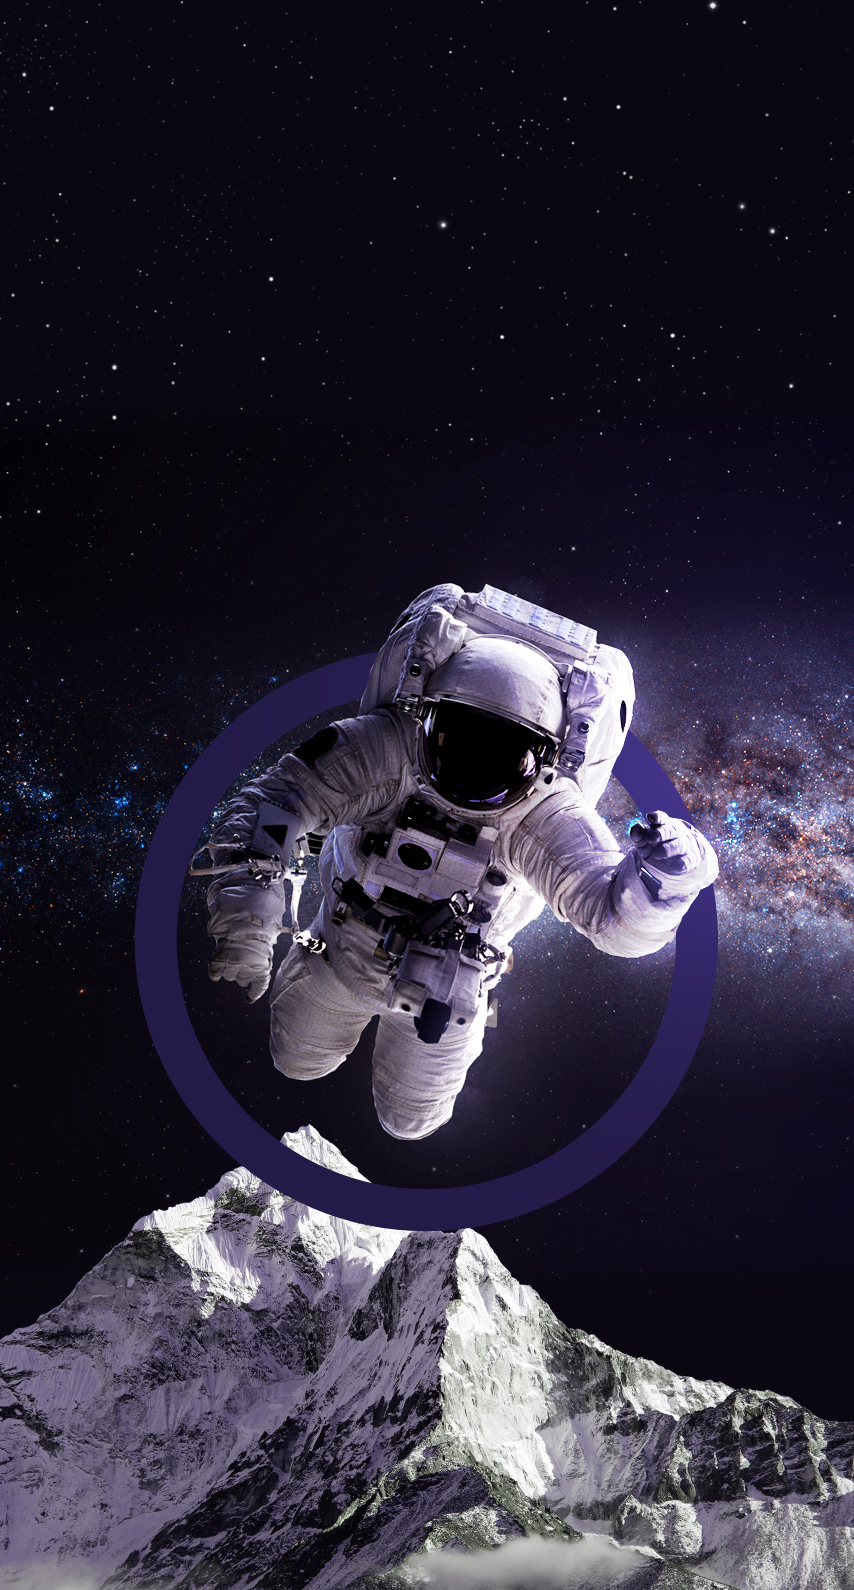 outer space, space station